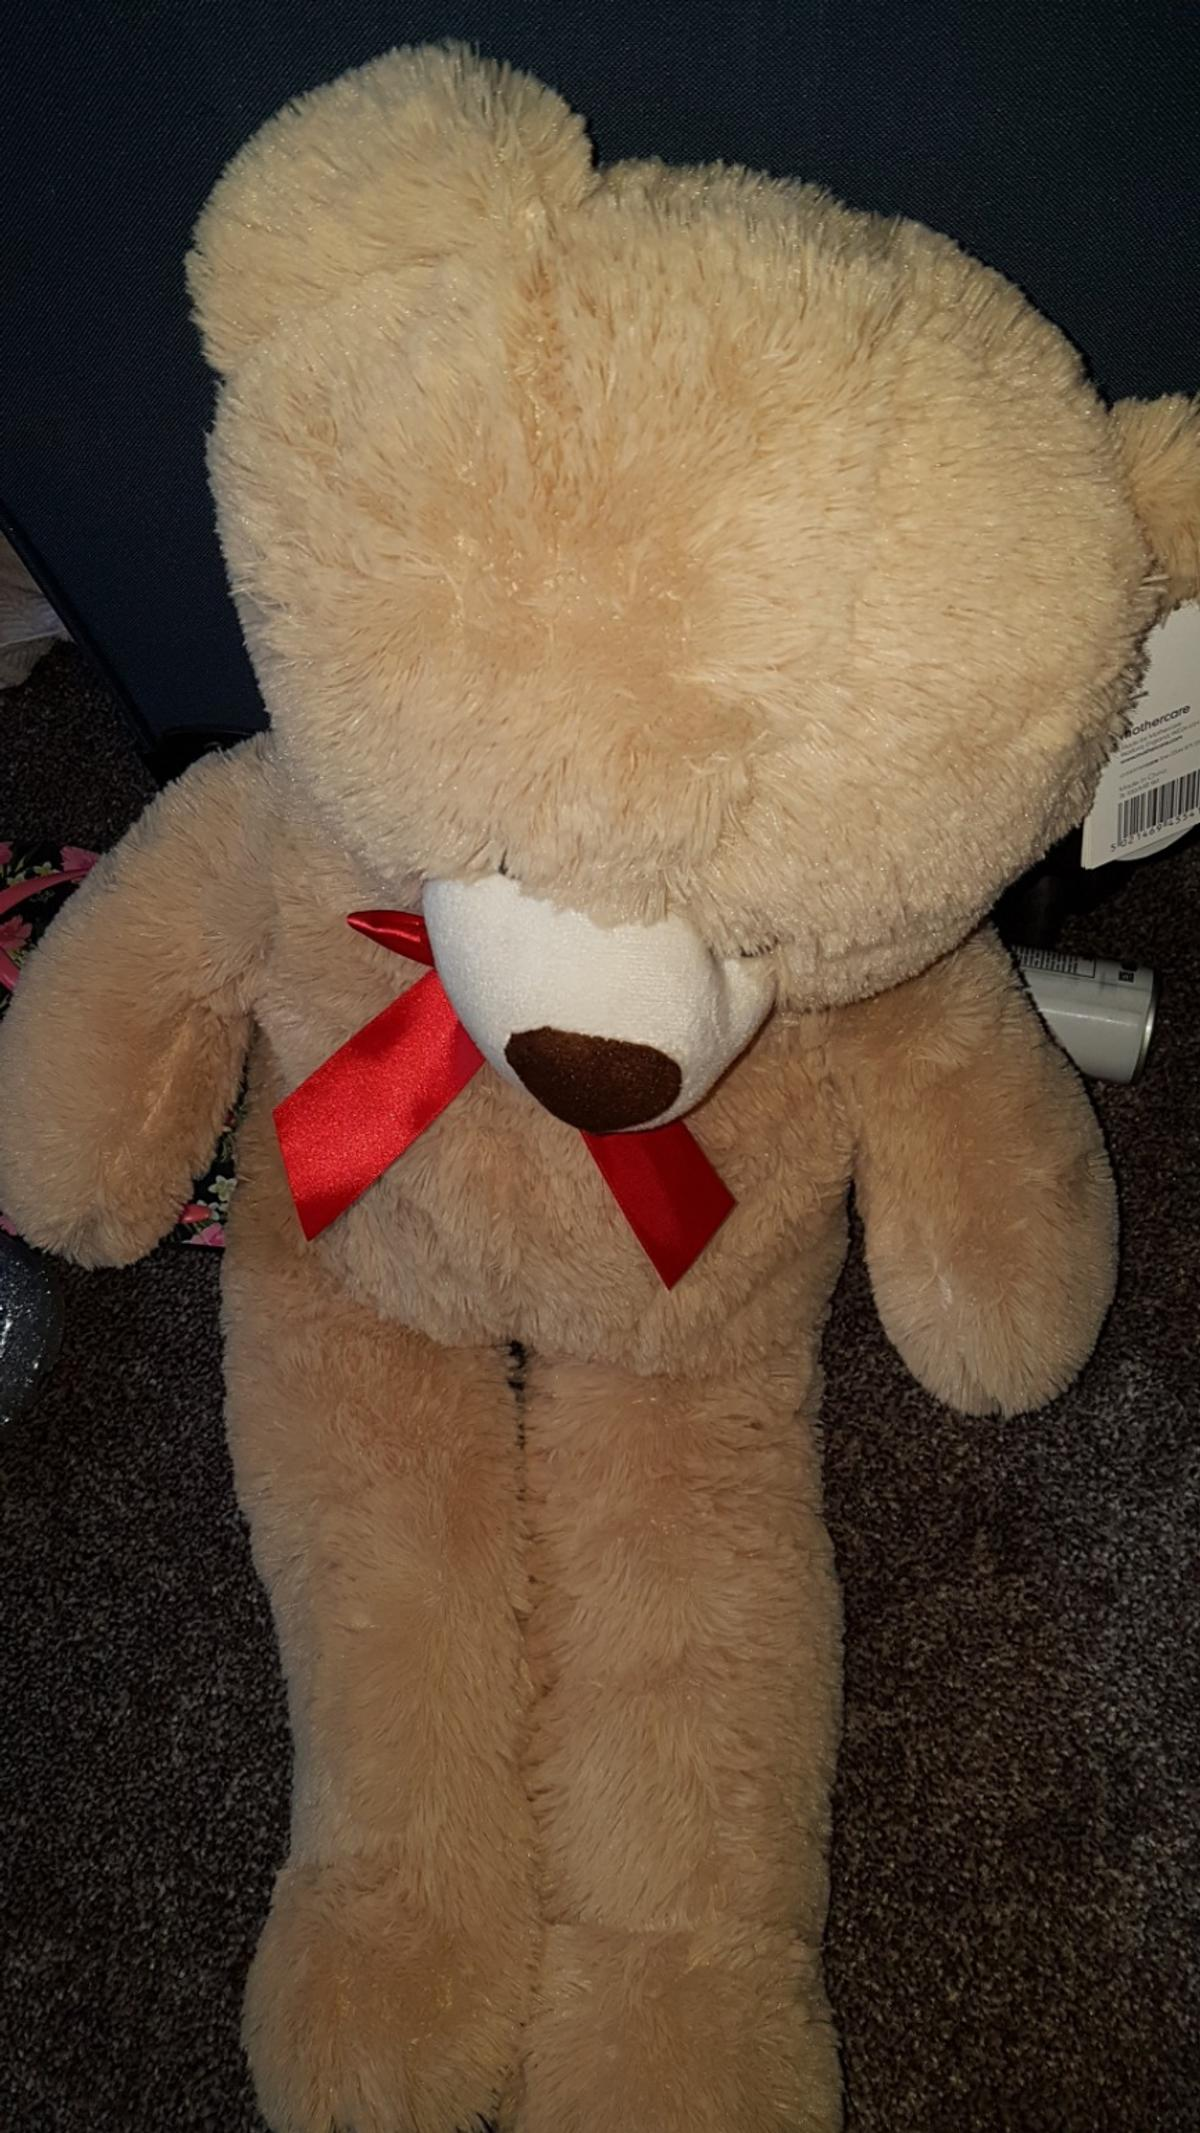 Hay Hay Chicken Stuffed Animal, Big Fluffy Teddy In Wv14 Dudley For 5 00 For Sale Shpock